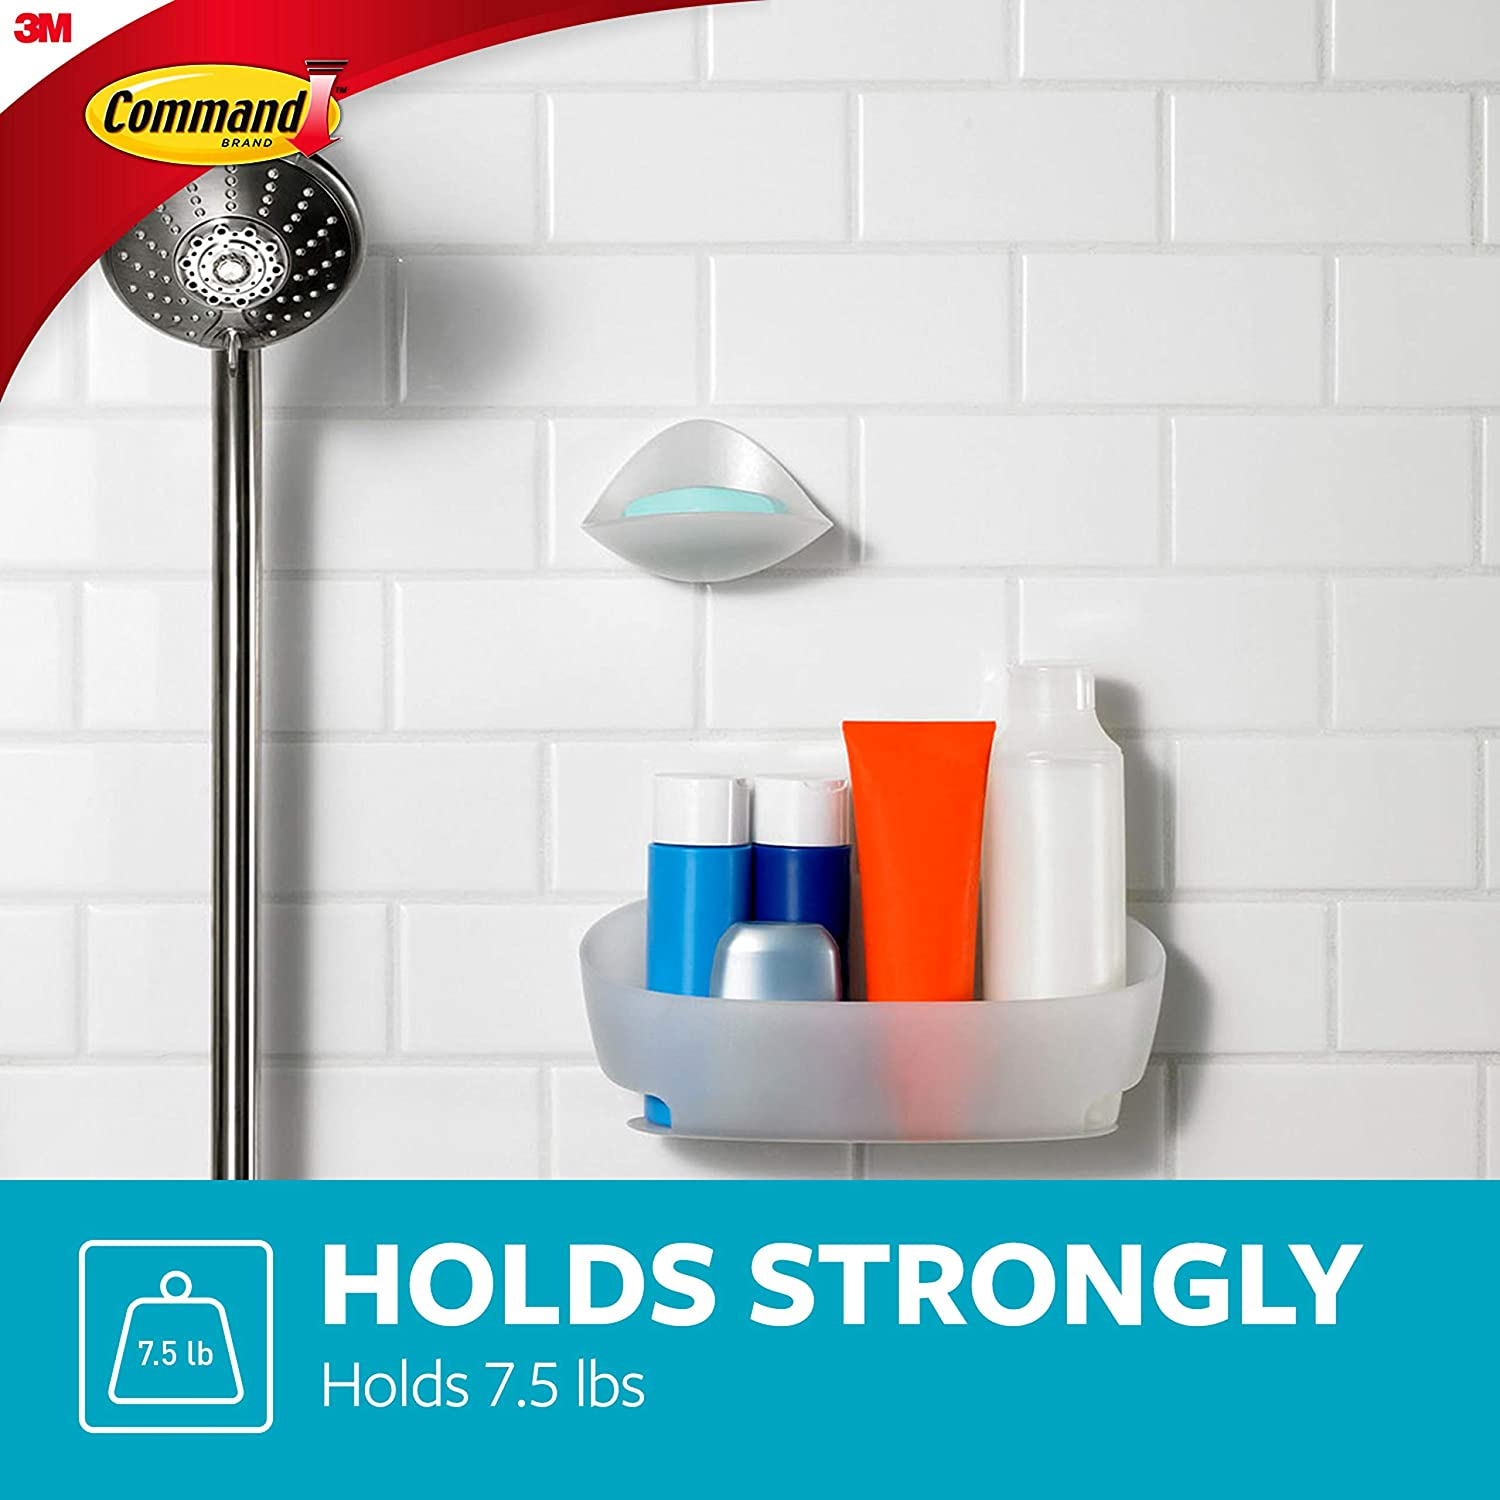 Command Shower Caddy with Water-Resistant Strips, Clear Frosted, 1 Caddy, 4 Strips (BATH11-ES), Organize your dorm: Home Improvement